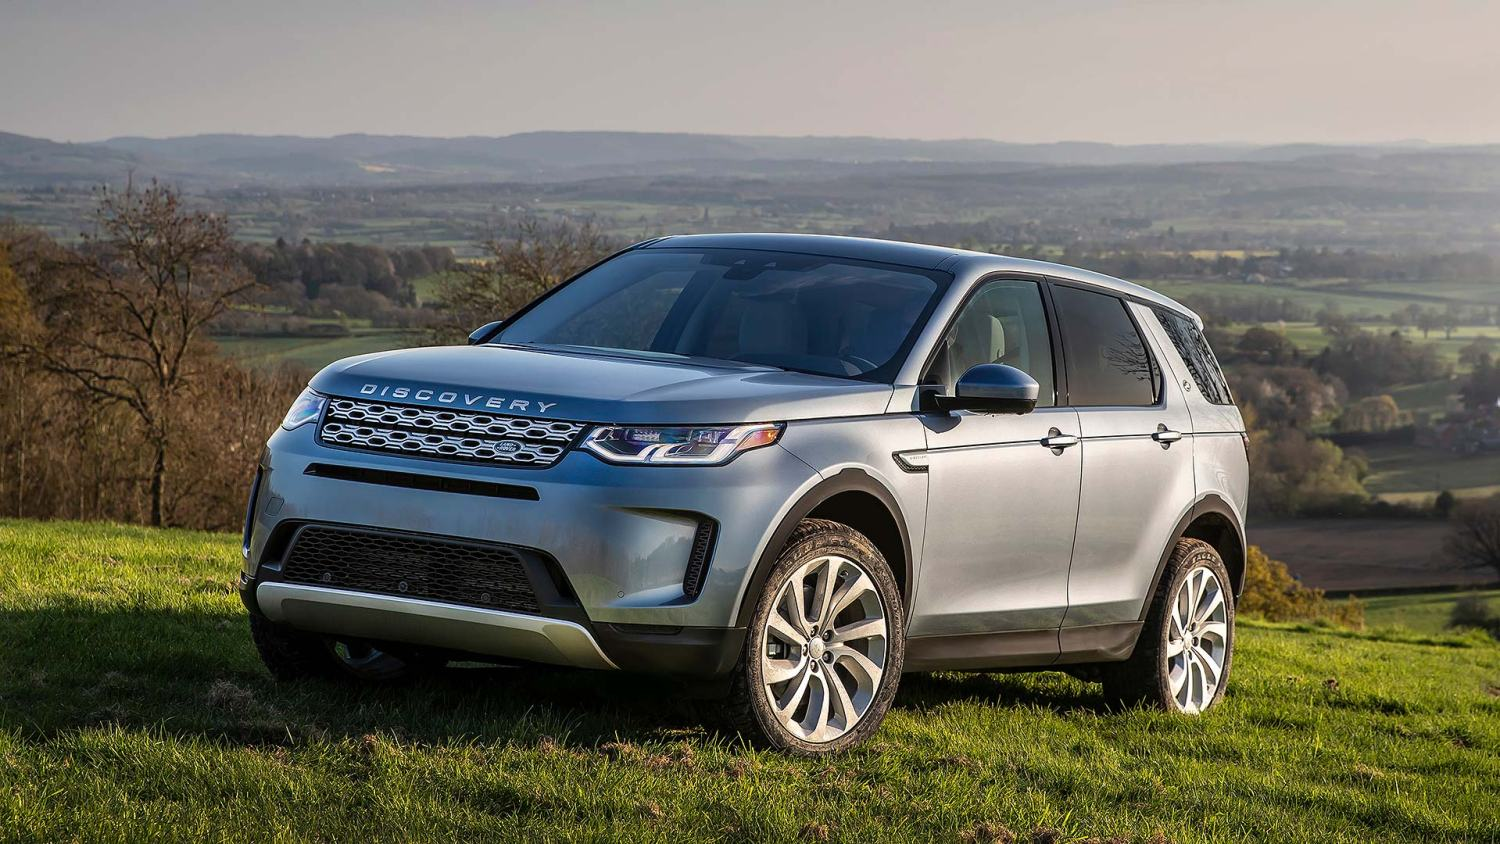 2019 Land Rover Discovery Sport: News, Design, Specs, Price >> 2020 Land Rover Discovery Sport Revealed Far More Than A Facelift